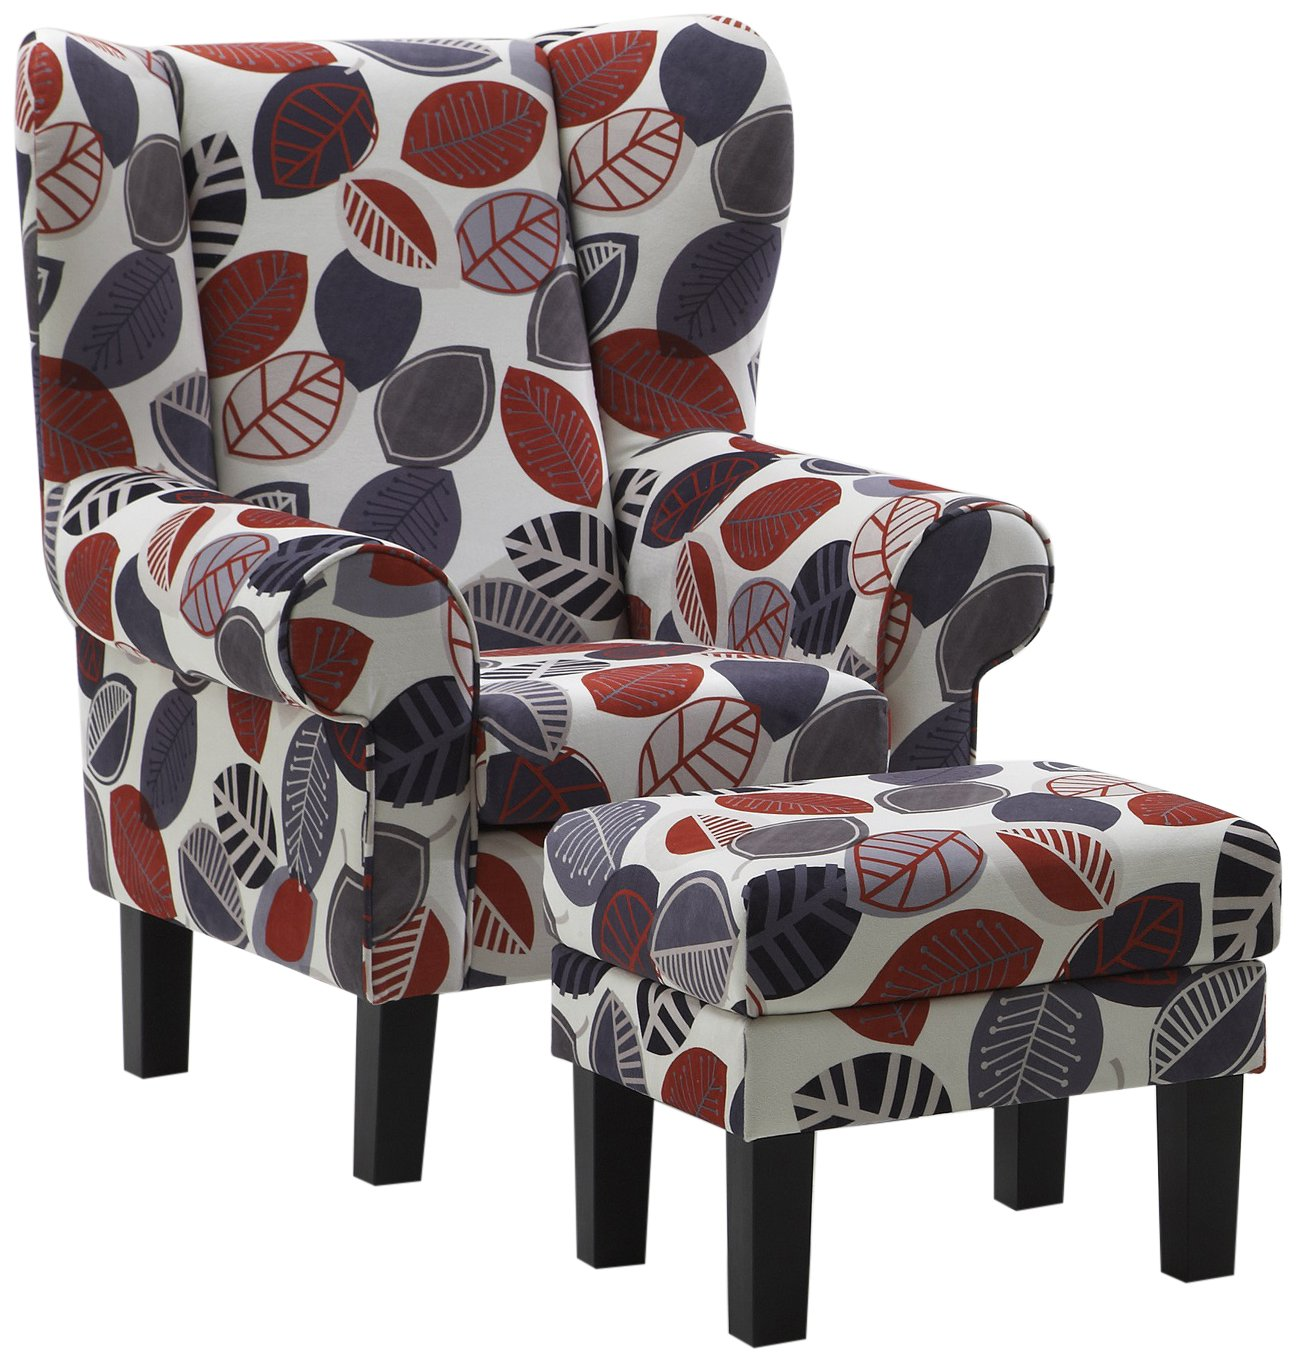 Ohrensessel mit hocker  Atlantic Home Collection JEFF Ohrensessel inklusive Hocker ...